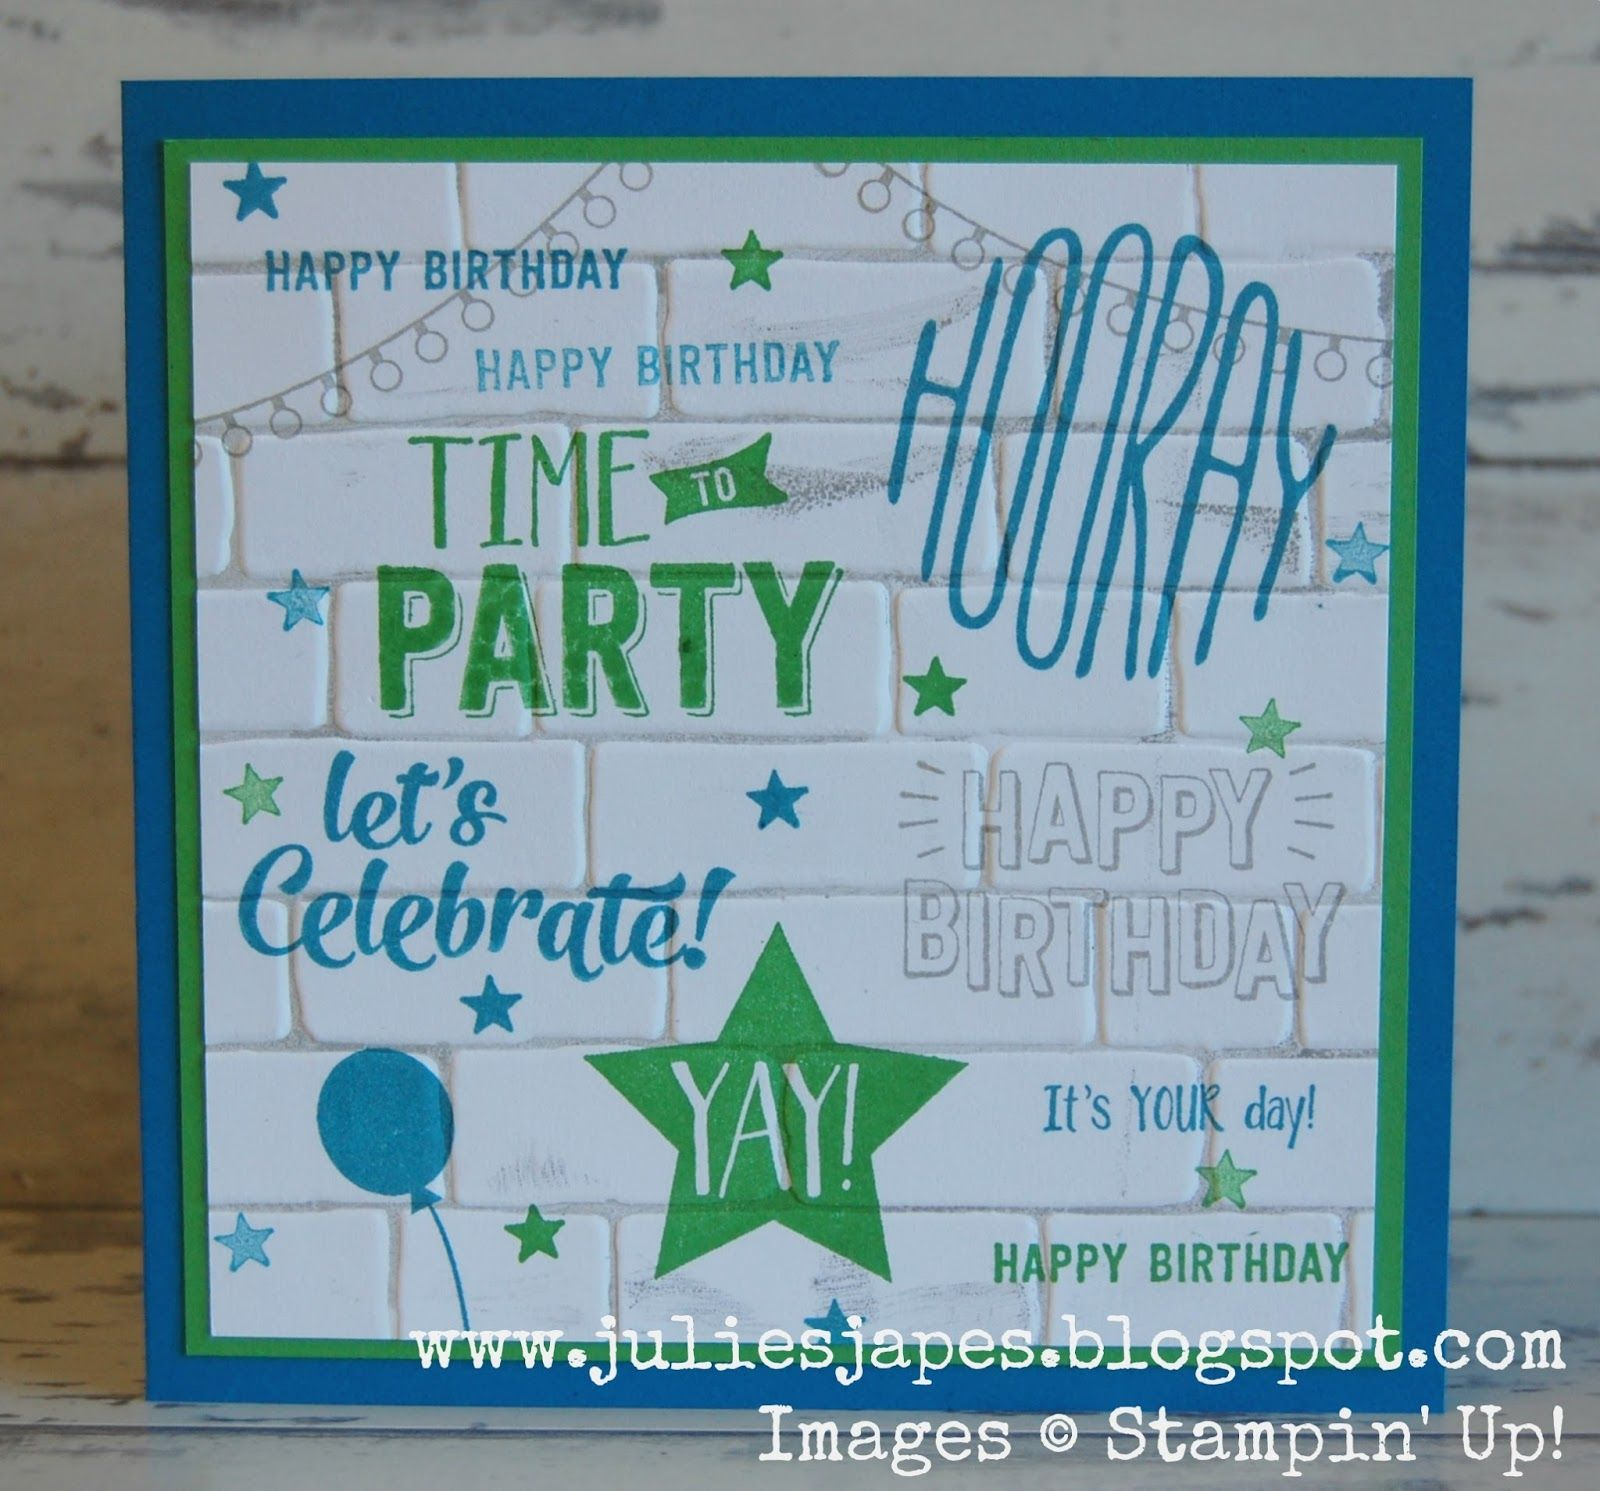 Stampin Up UK Blog Demonstrator Order Online In The Card Ideas Products